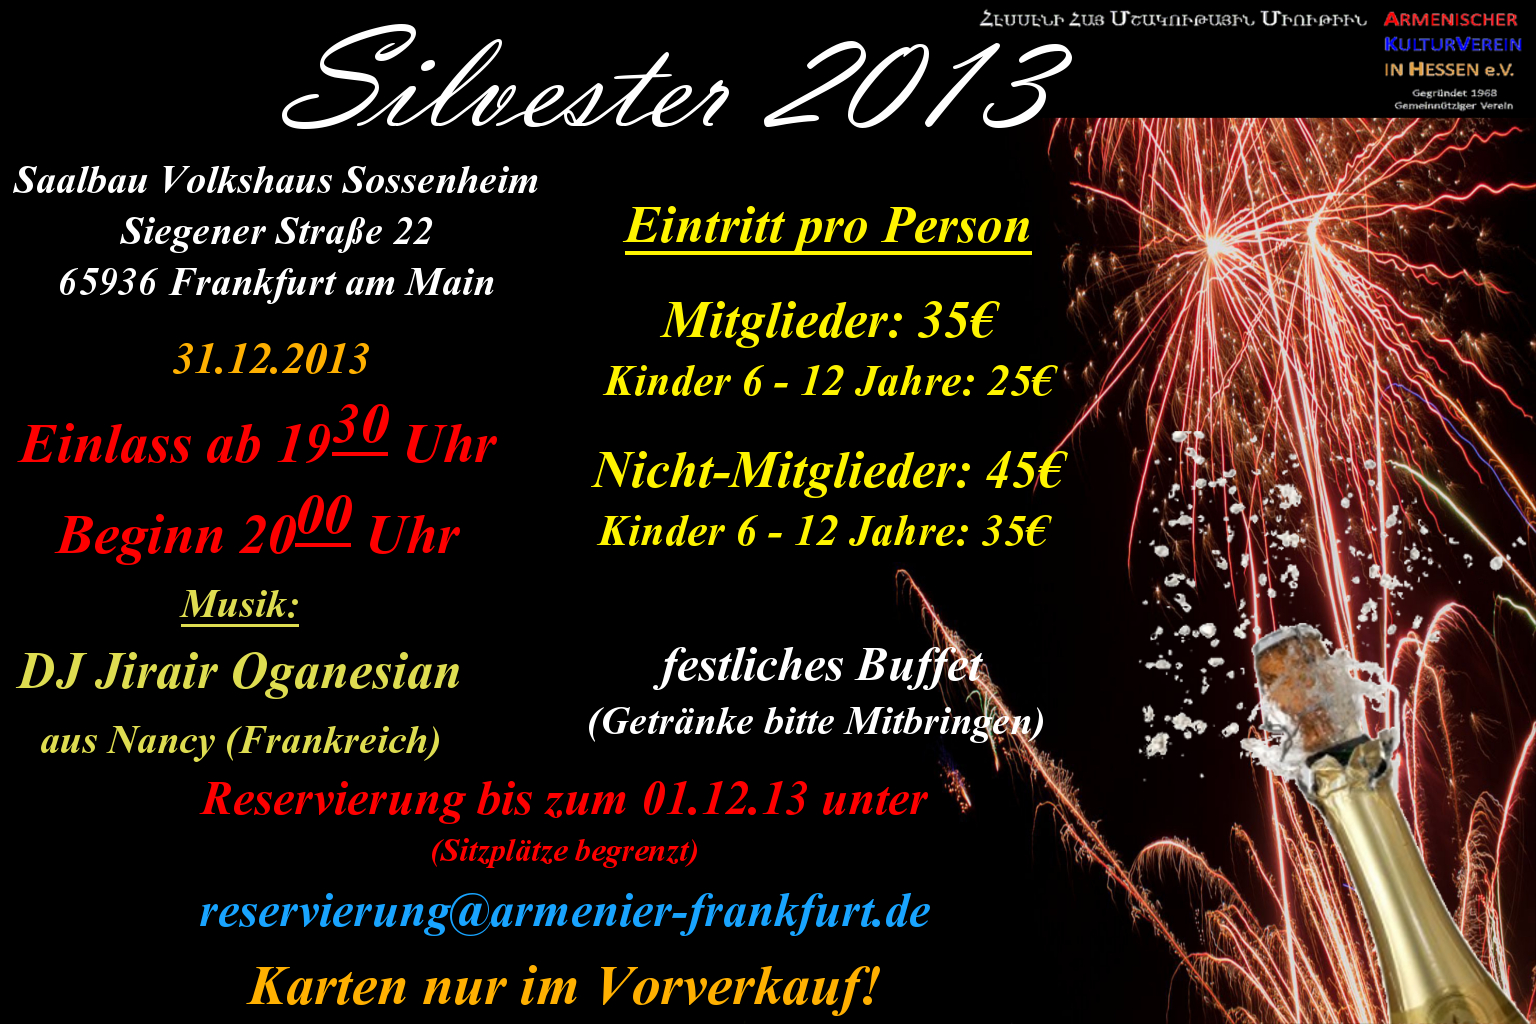 Single silvesterparty schweinfurt